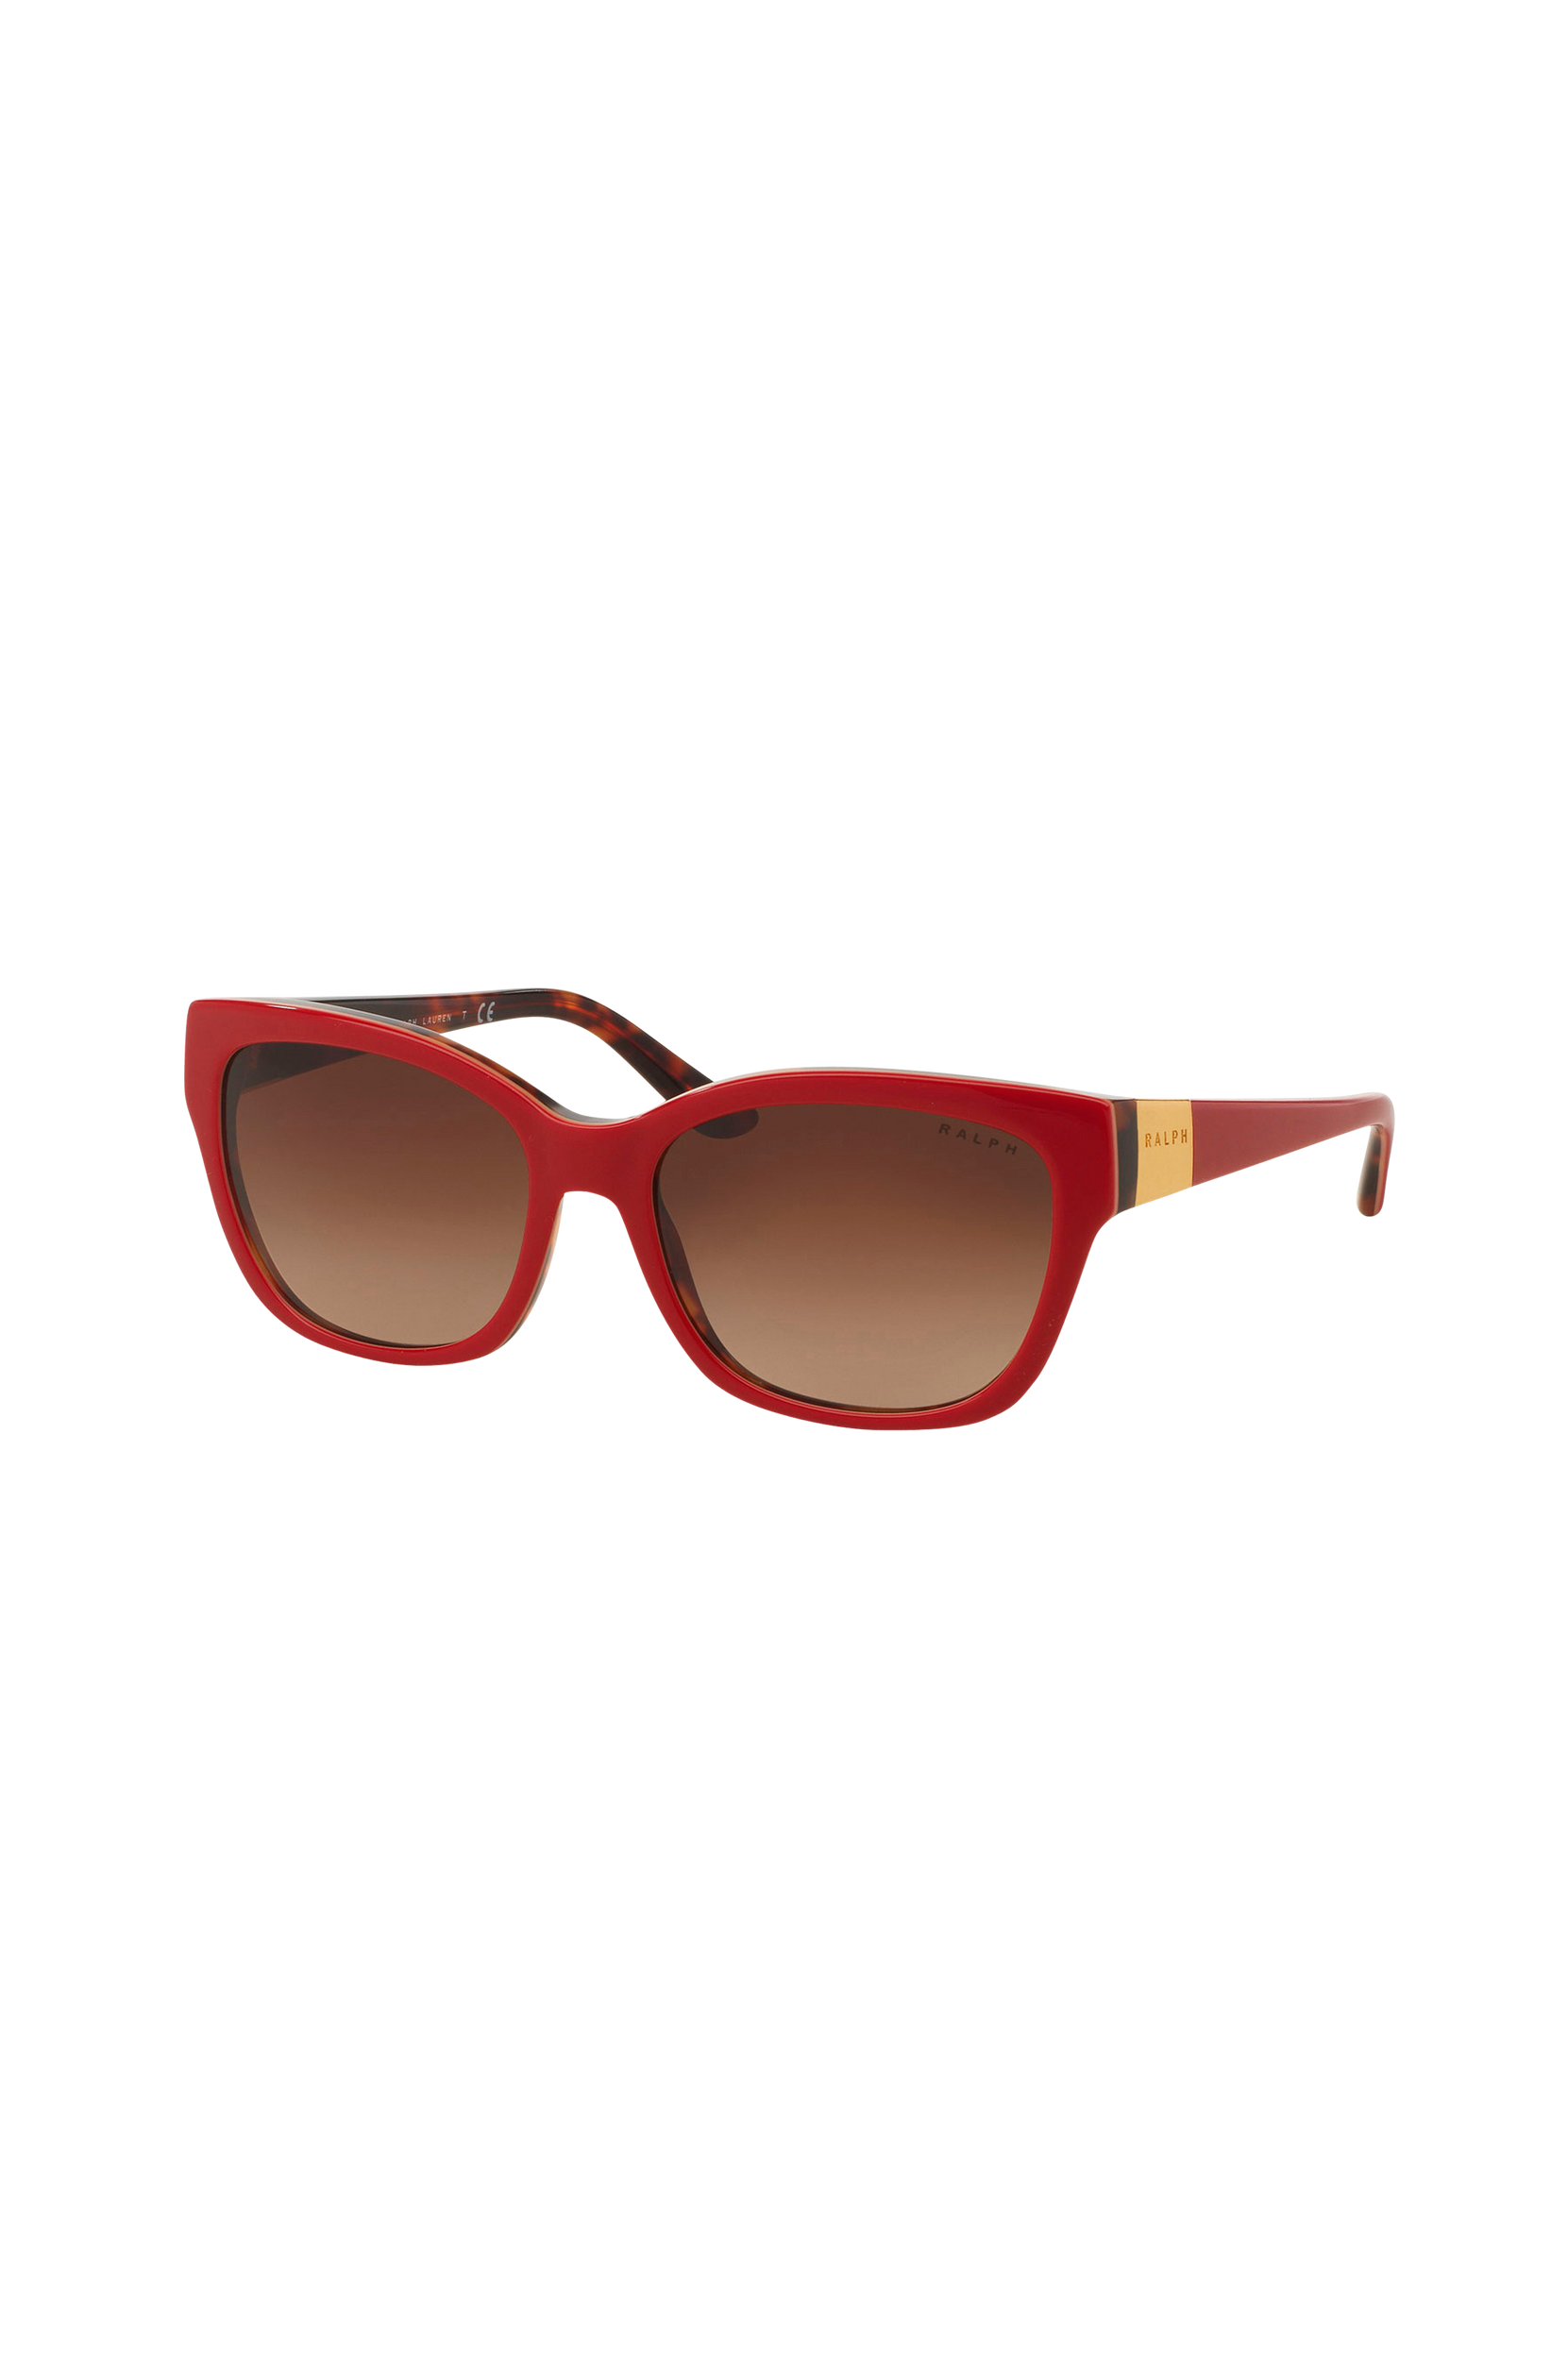 Essentials Ra5208 -aurinkolasit, Red Tortoise